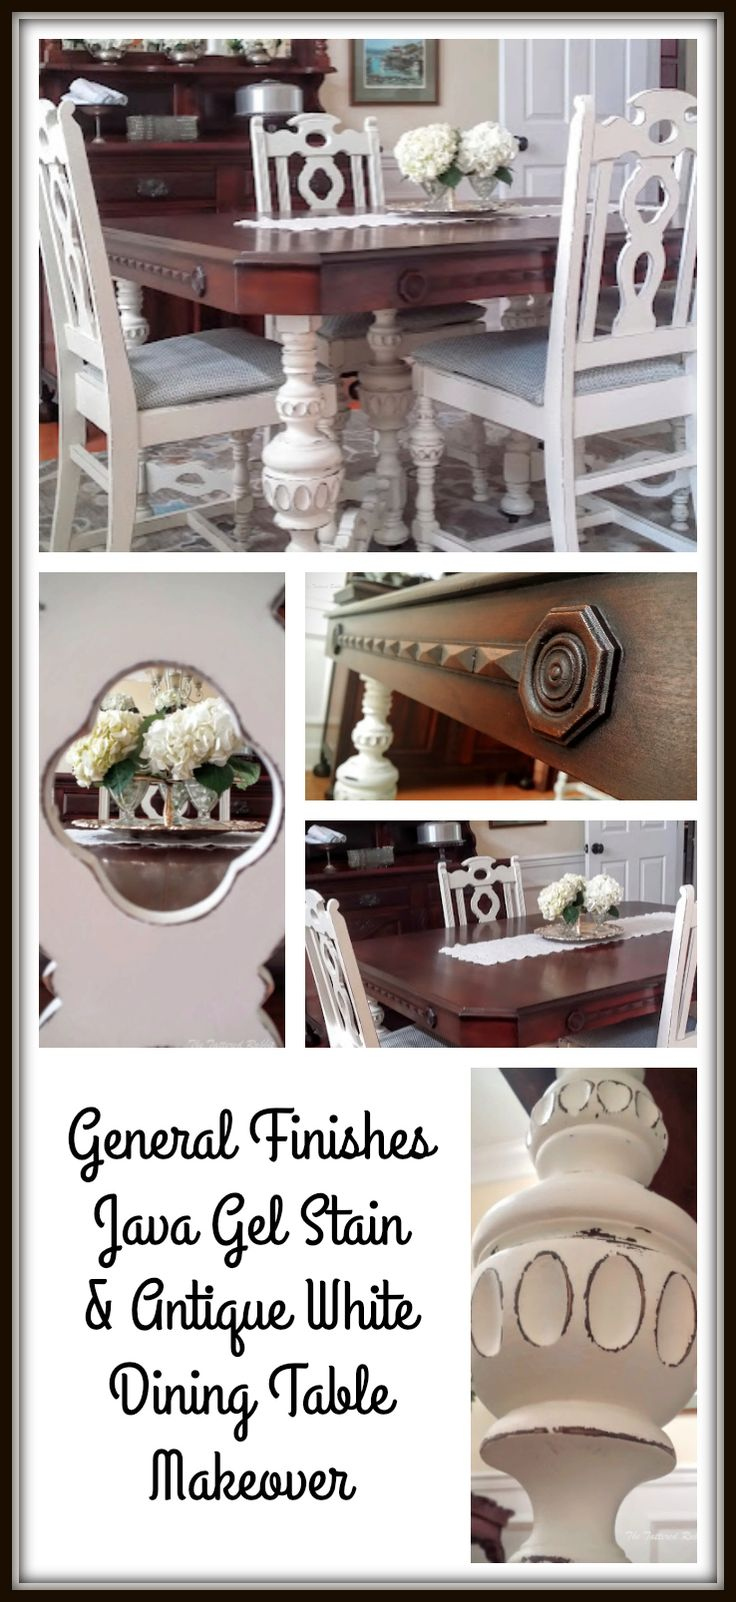 Dining room table makeover was done with Java gel stain and antique white milk paint from General Finishes to fit the French Country theme.